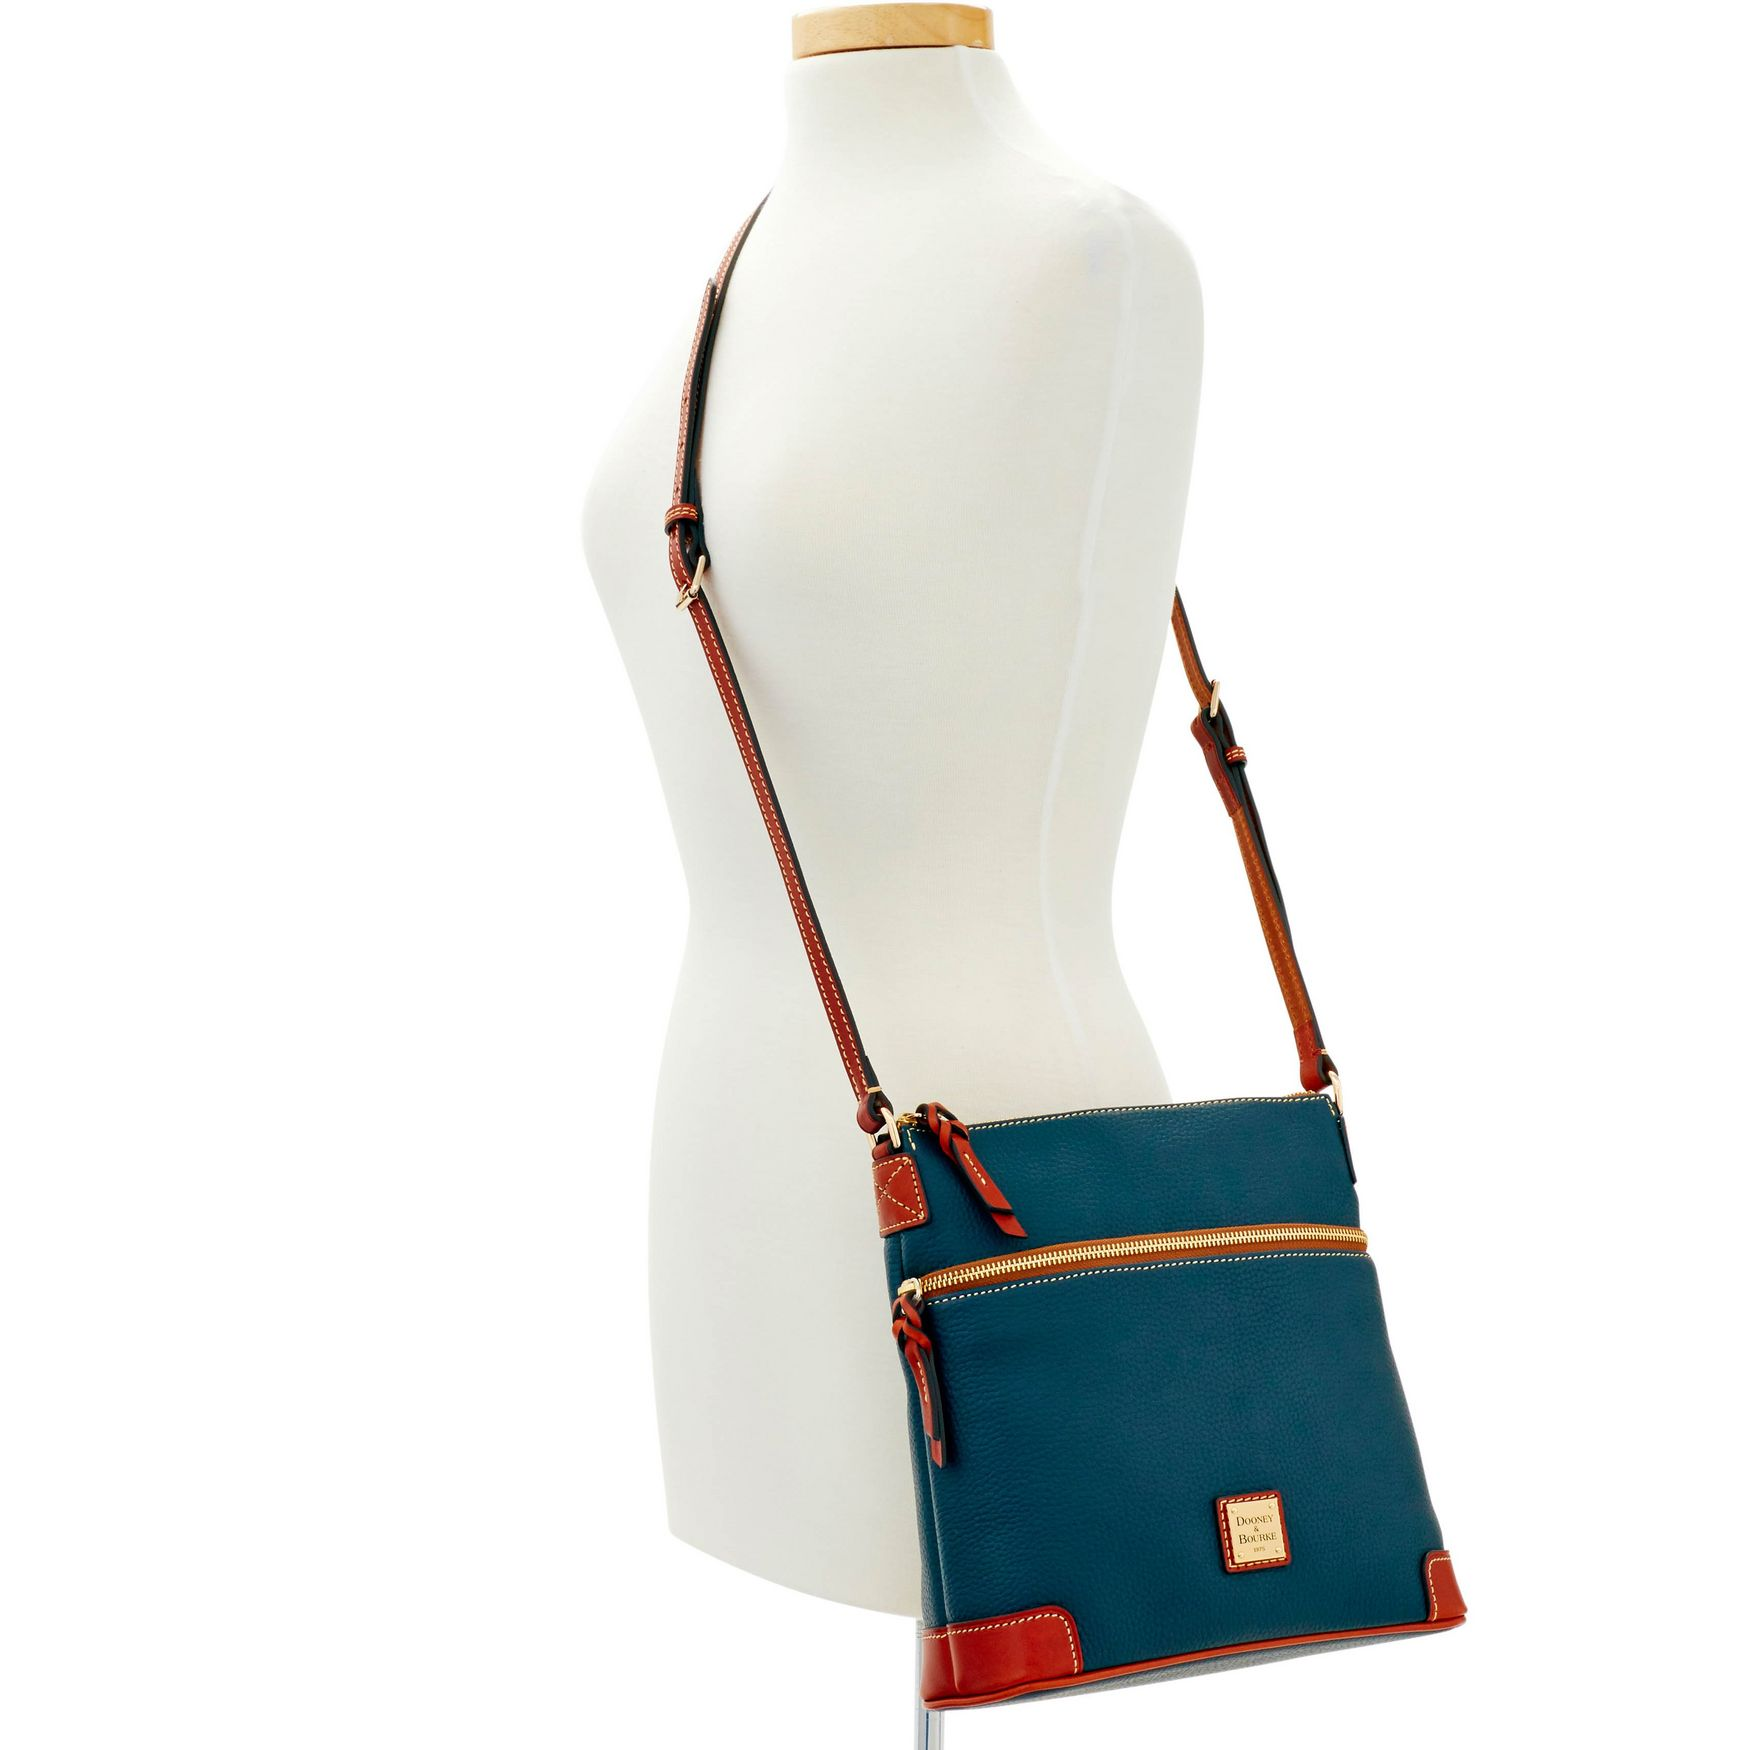 Dooney-amp-Bourke-Pebble-Grain-Crossbody-Medium-Wristlet-Shoulder-Bag thumbnail 26